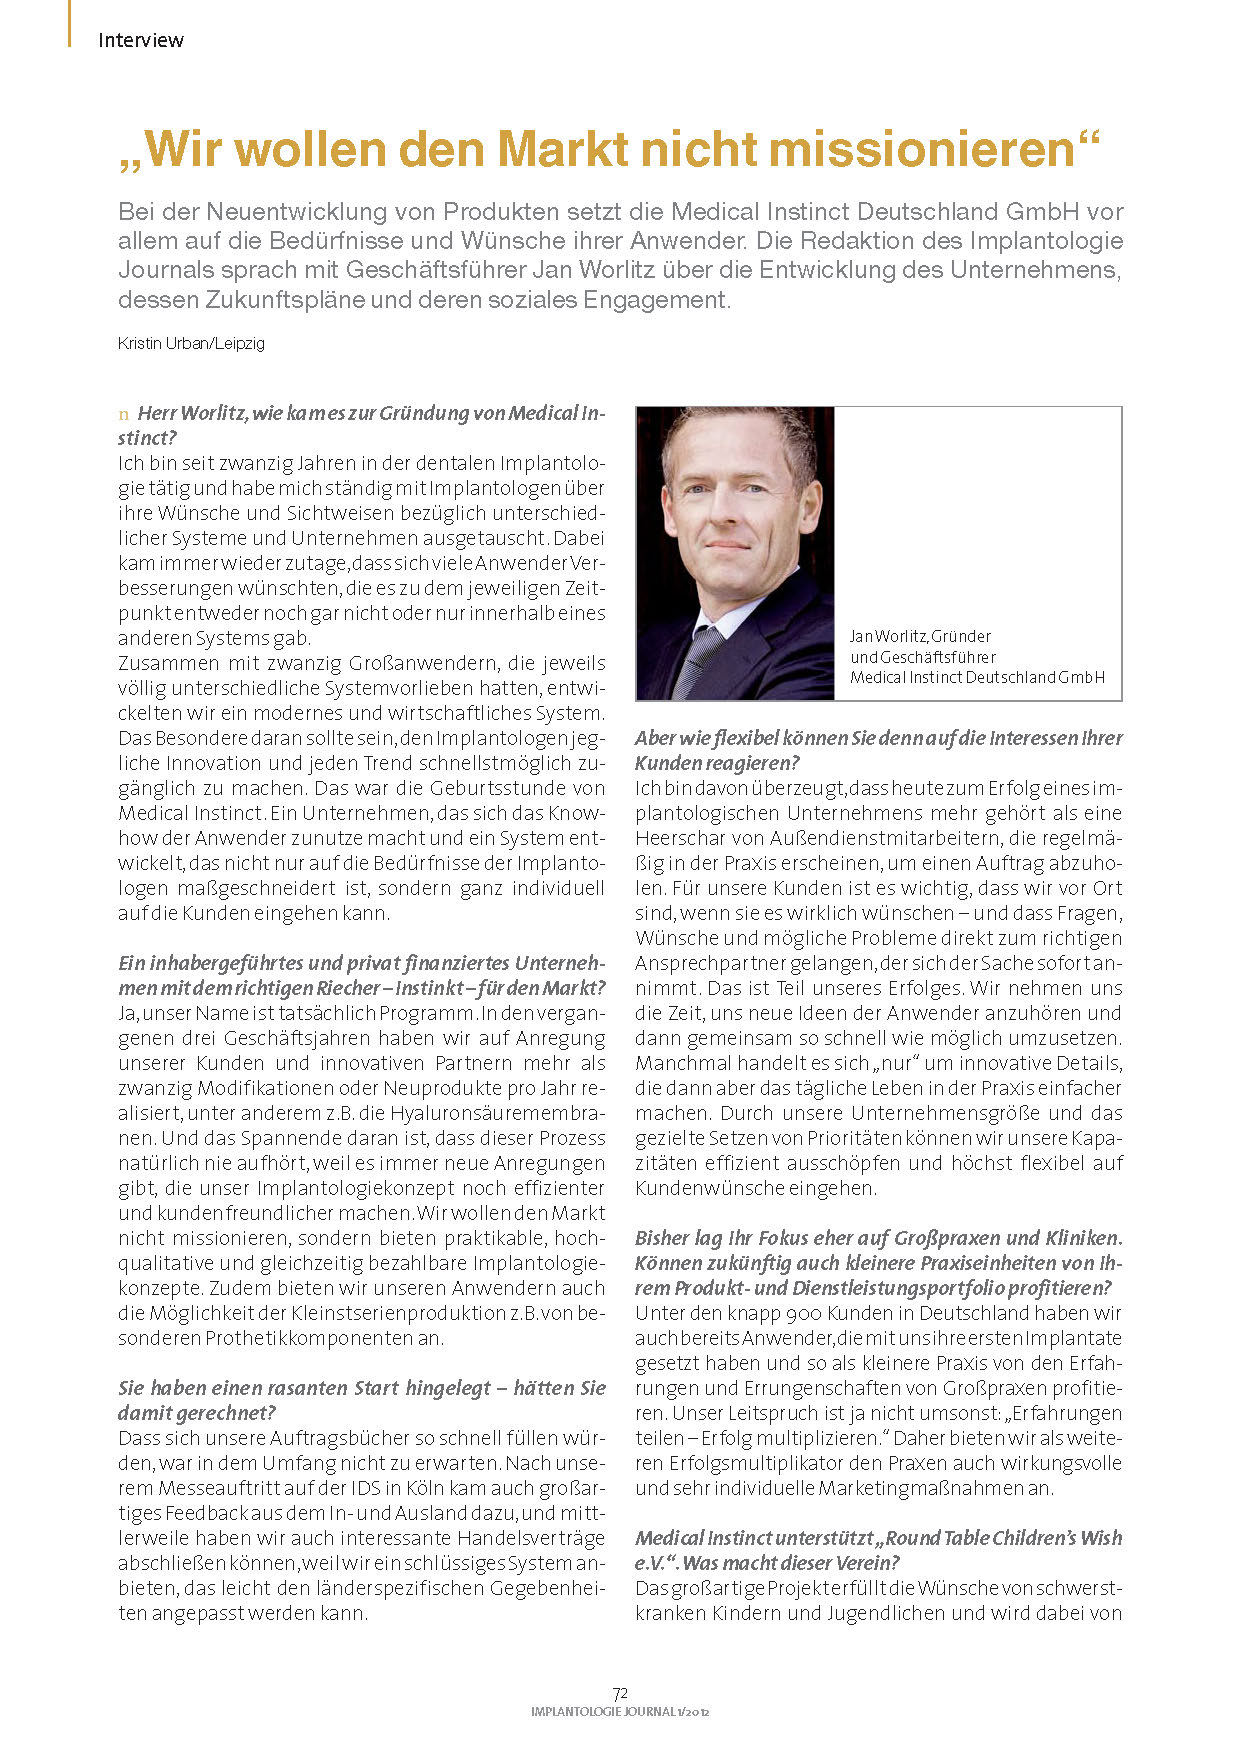 Implantologie Journal - Interview Jan Worlitz